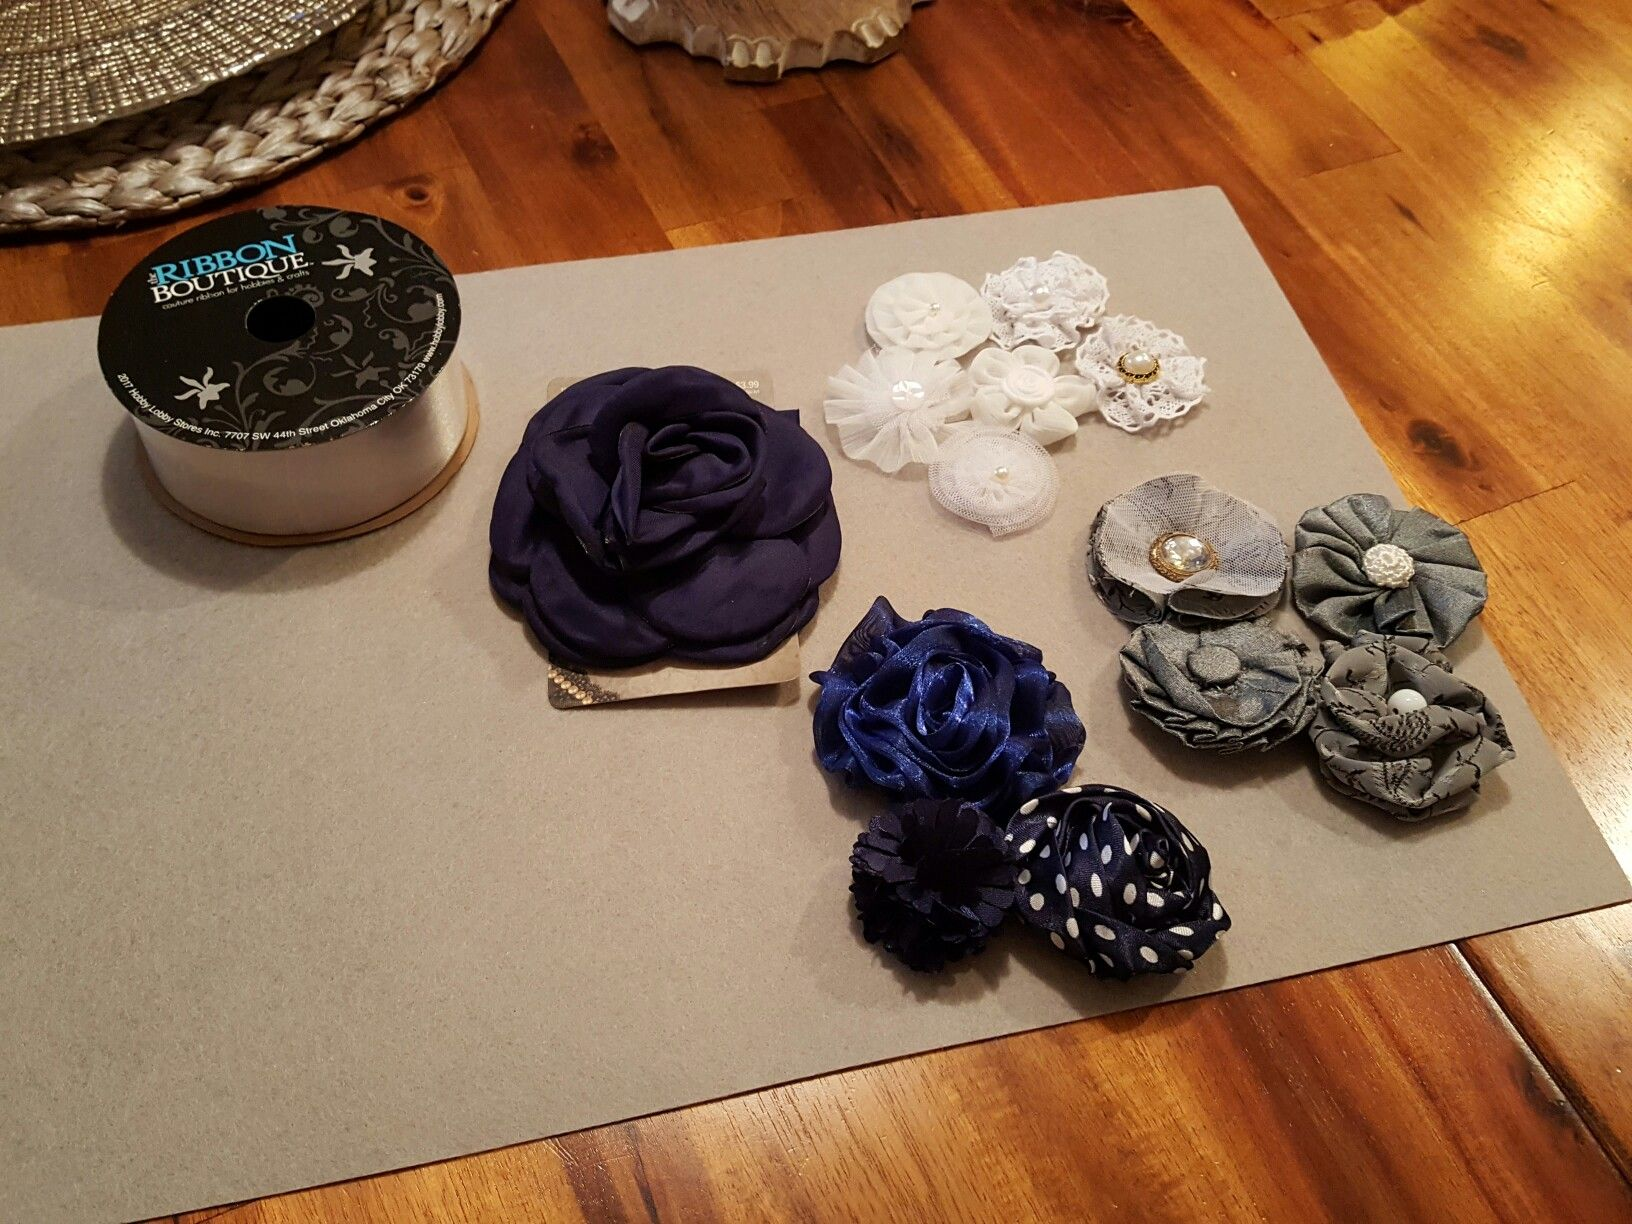 Maternity Sash - Hobby Lobby Fabric Flowers from Paper Crafts and Wearable Art